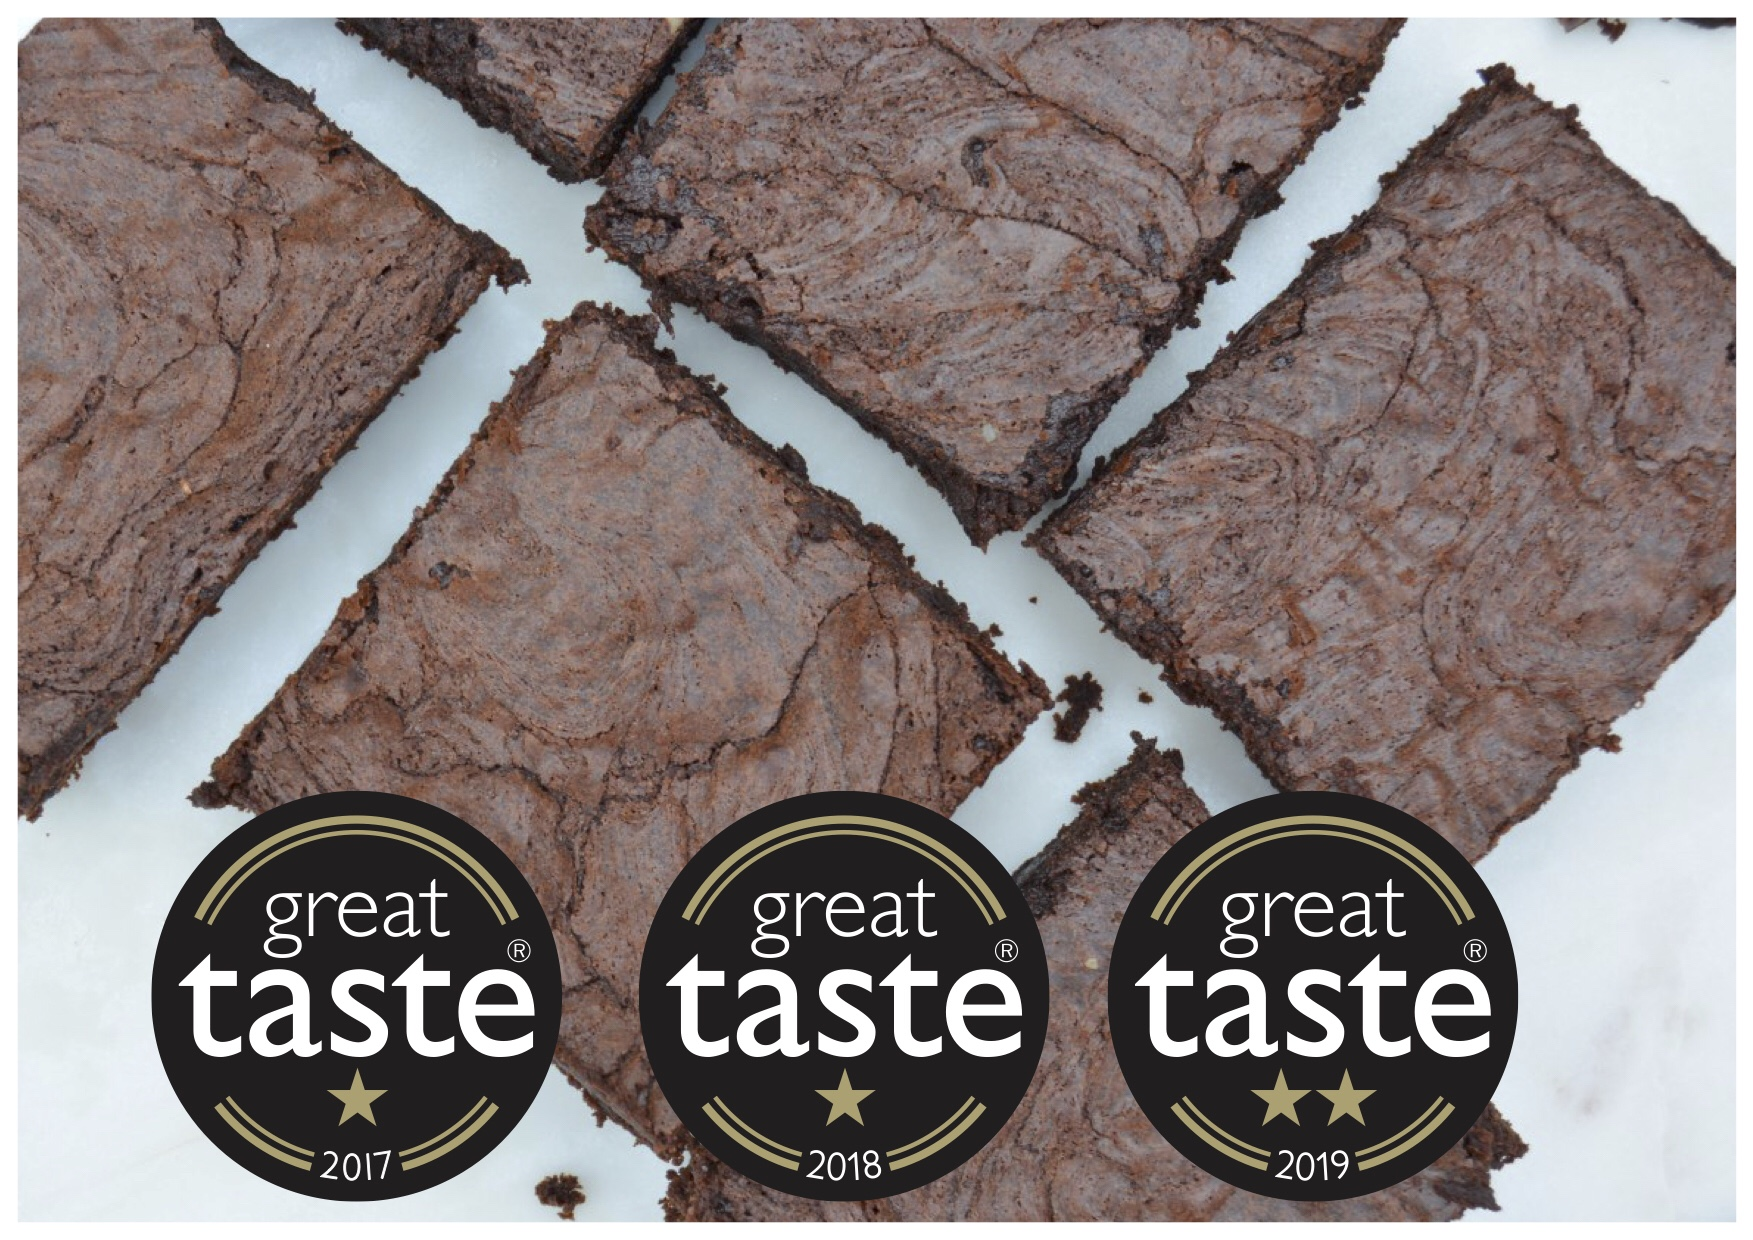 Award-winning Brownies - We have won six Great Taste Awards since 2017 and have been recognised as a Great Taste Producer. We take great pride in offering delicious brownies that are well worth every indulgent bite.